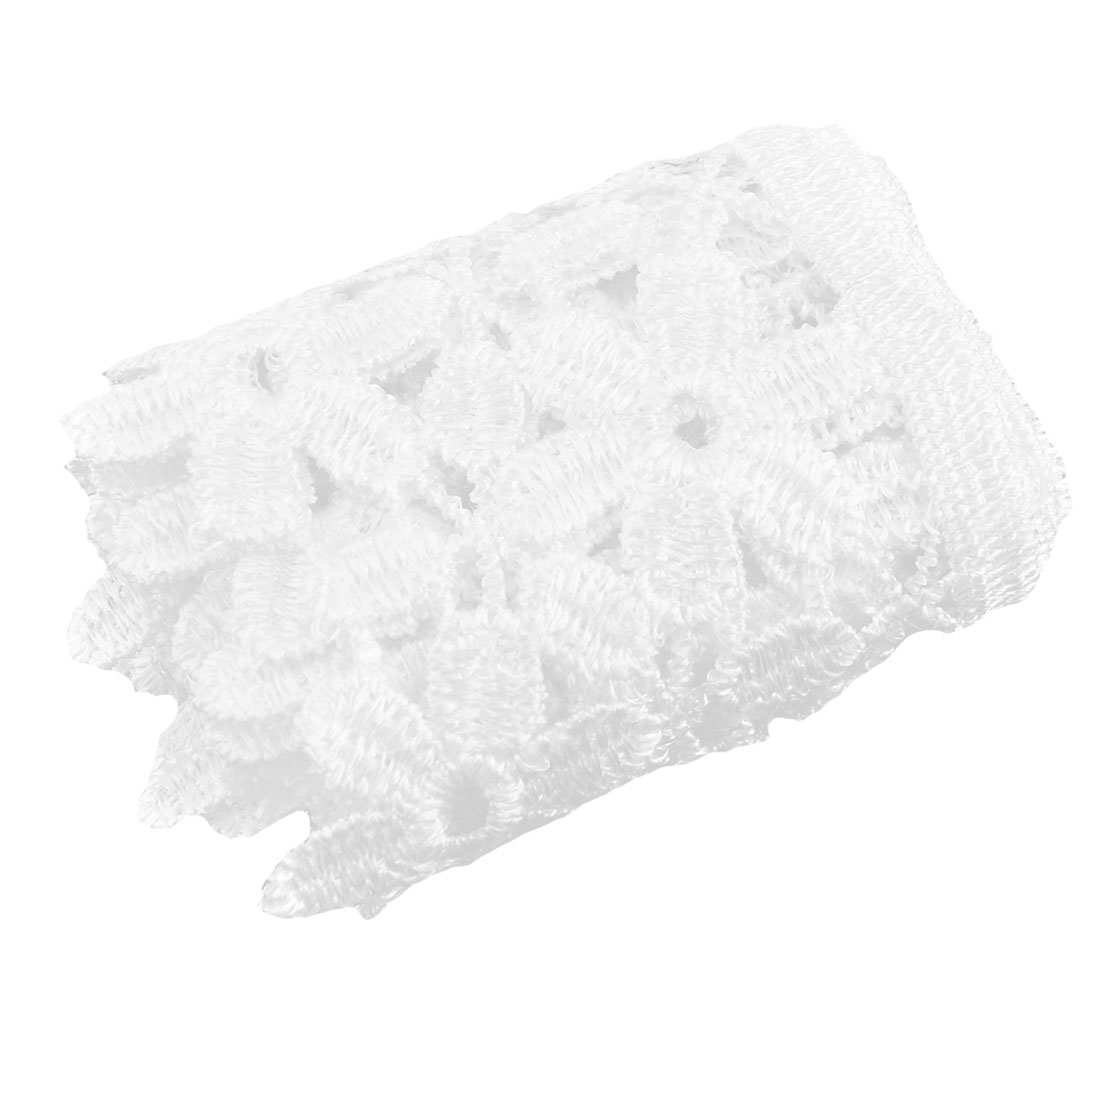 Polyester Floral Decor Sewing Embellishment Lace Trim Applique 3.1 Inches Width